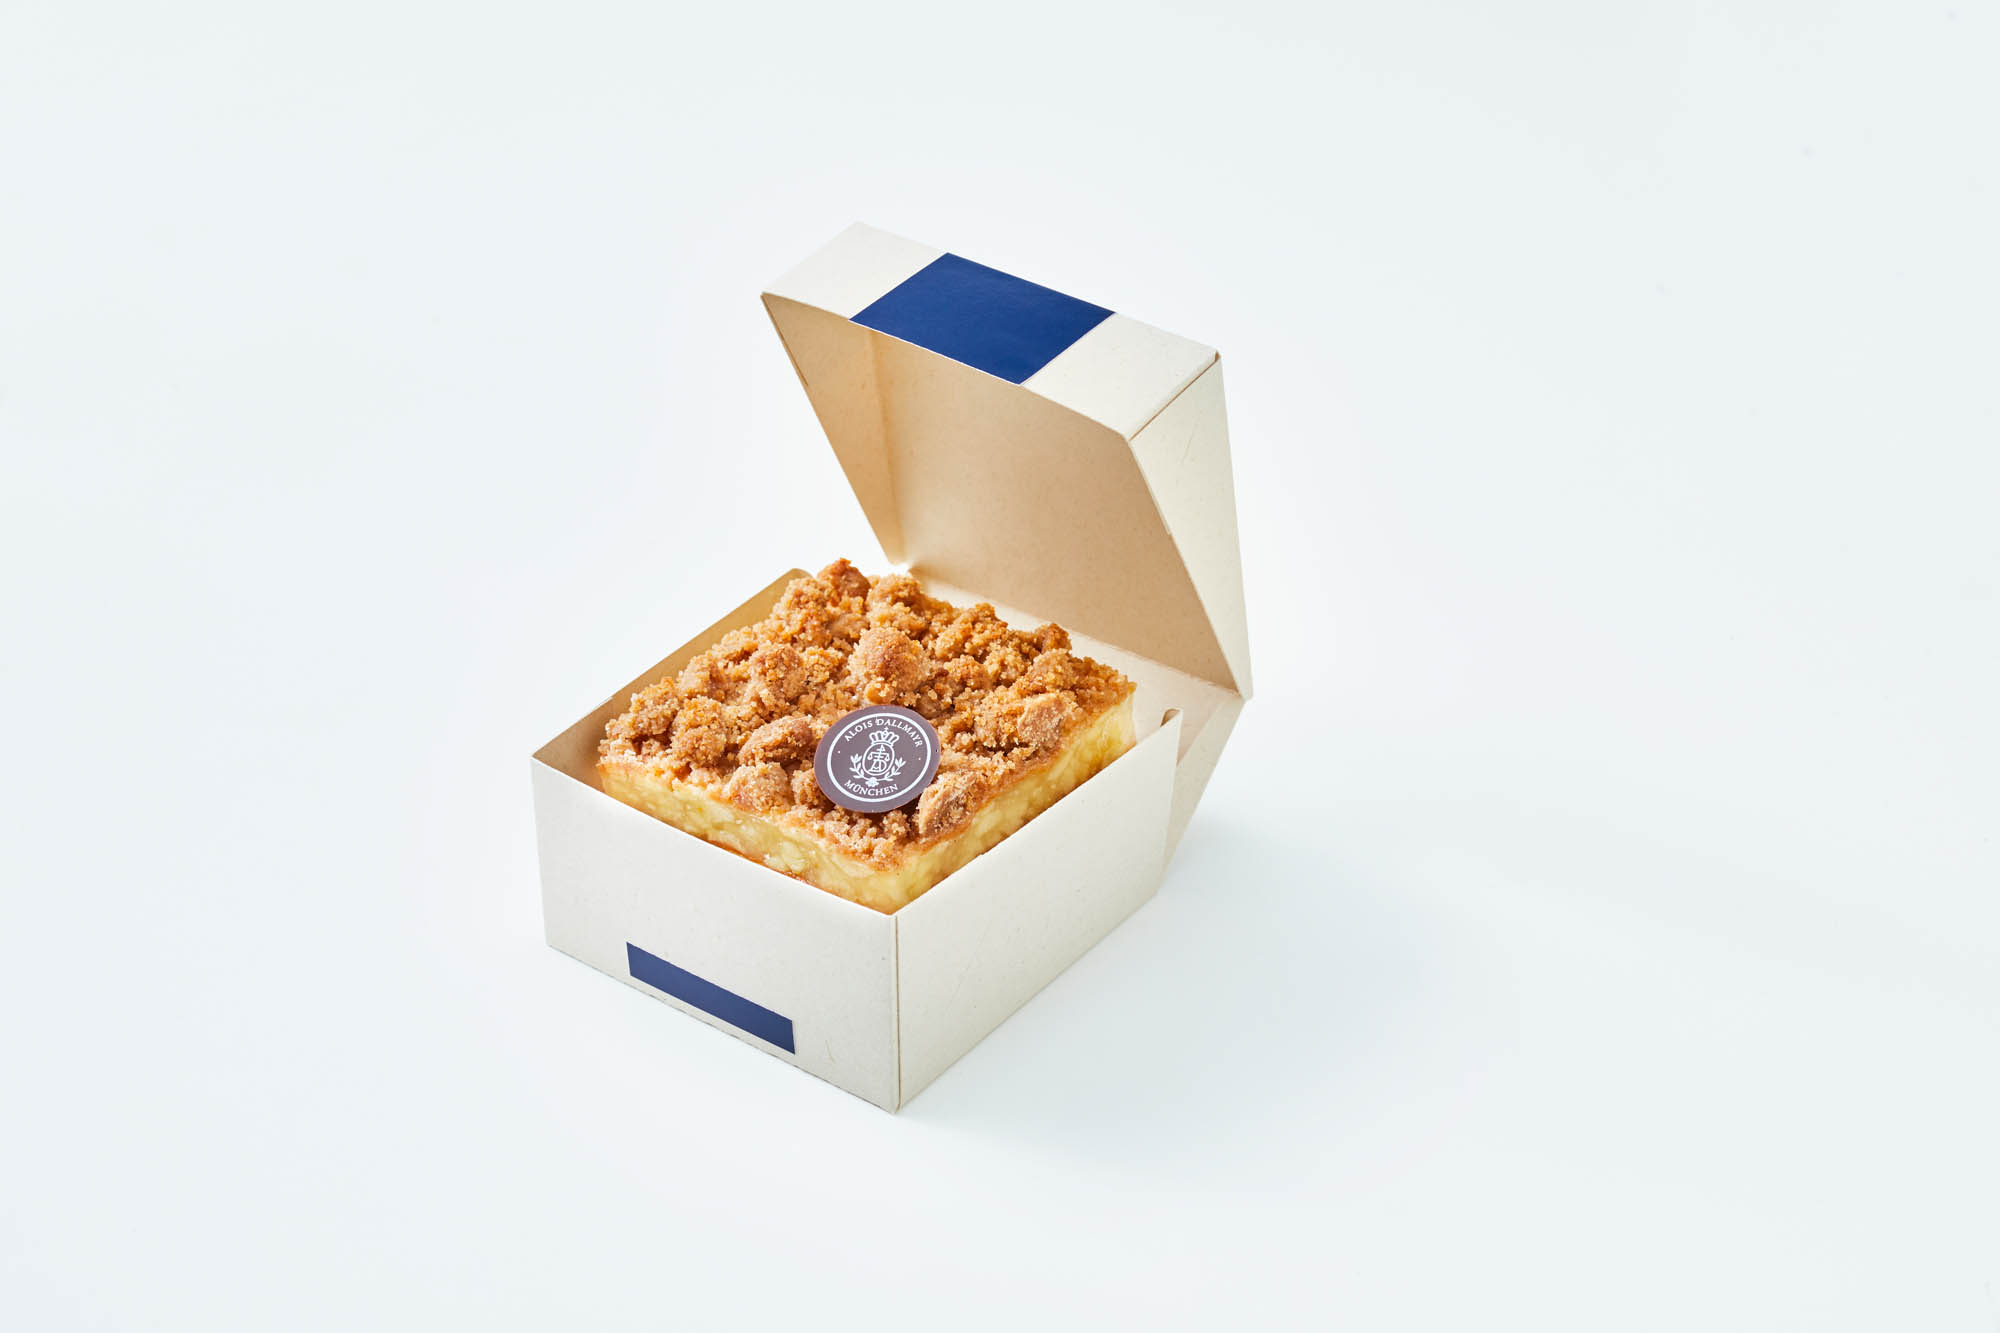 Lufthansa new catering concept